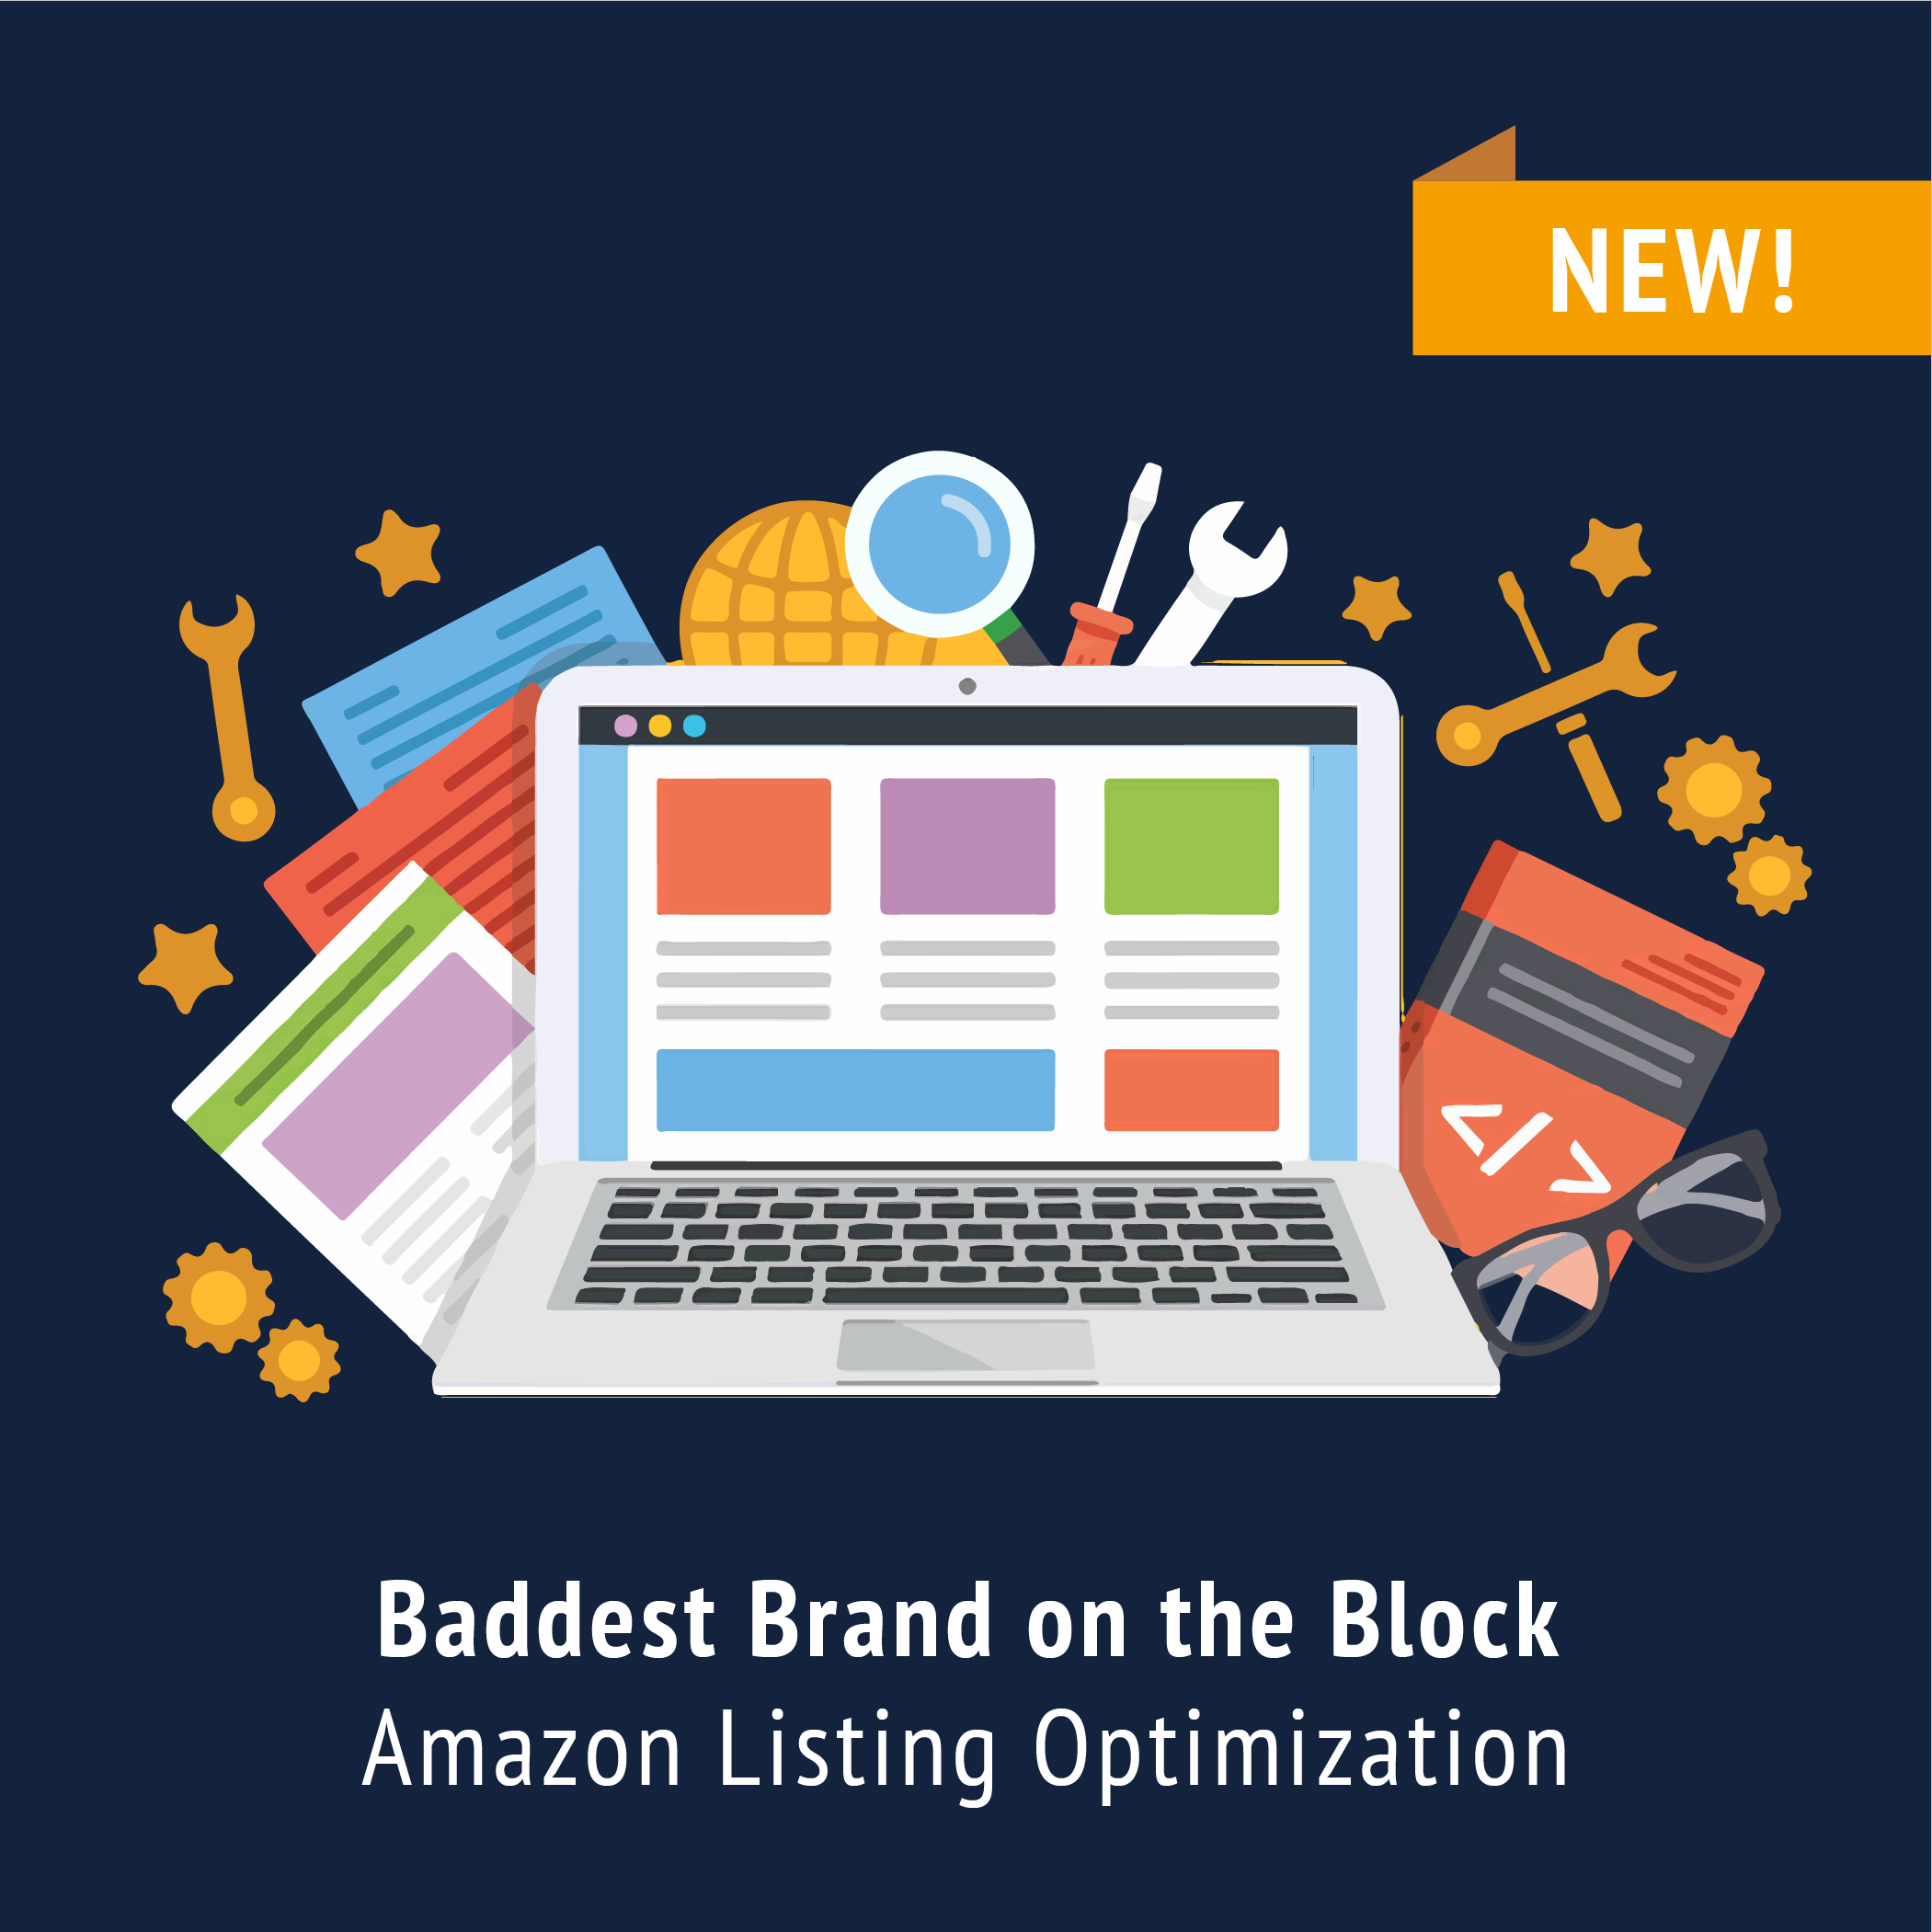 Emmazon bundle Amazon listing optimization with keyword research, EBC or A+ content. Infographic text, and more!